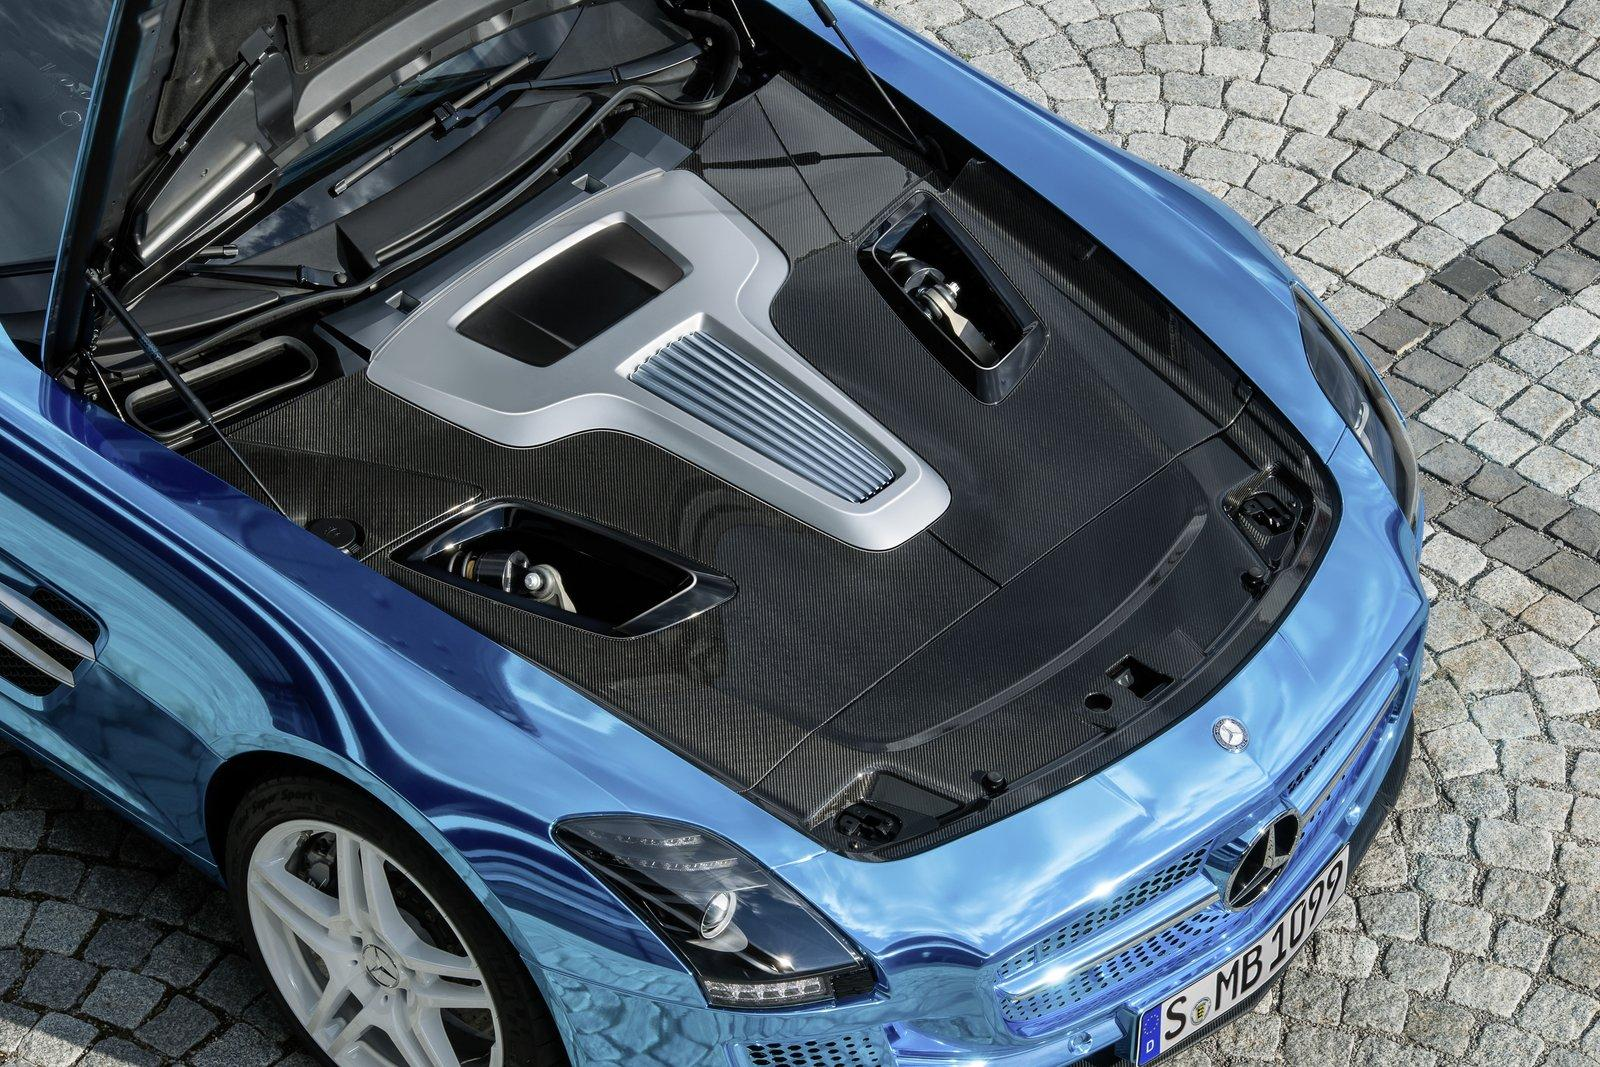 100 hot cars mercedes benz sls electric drive for Mercedes benz electric drive